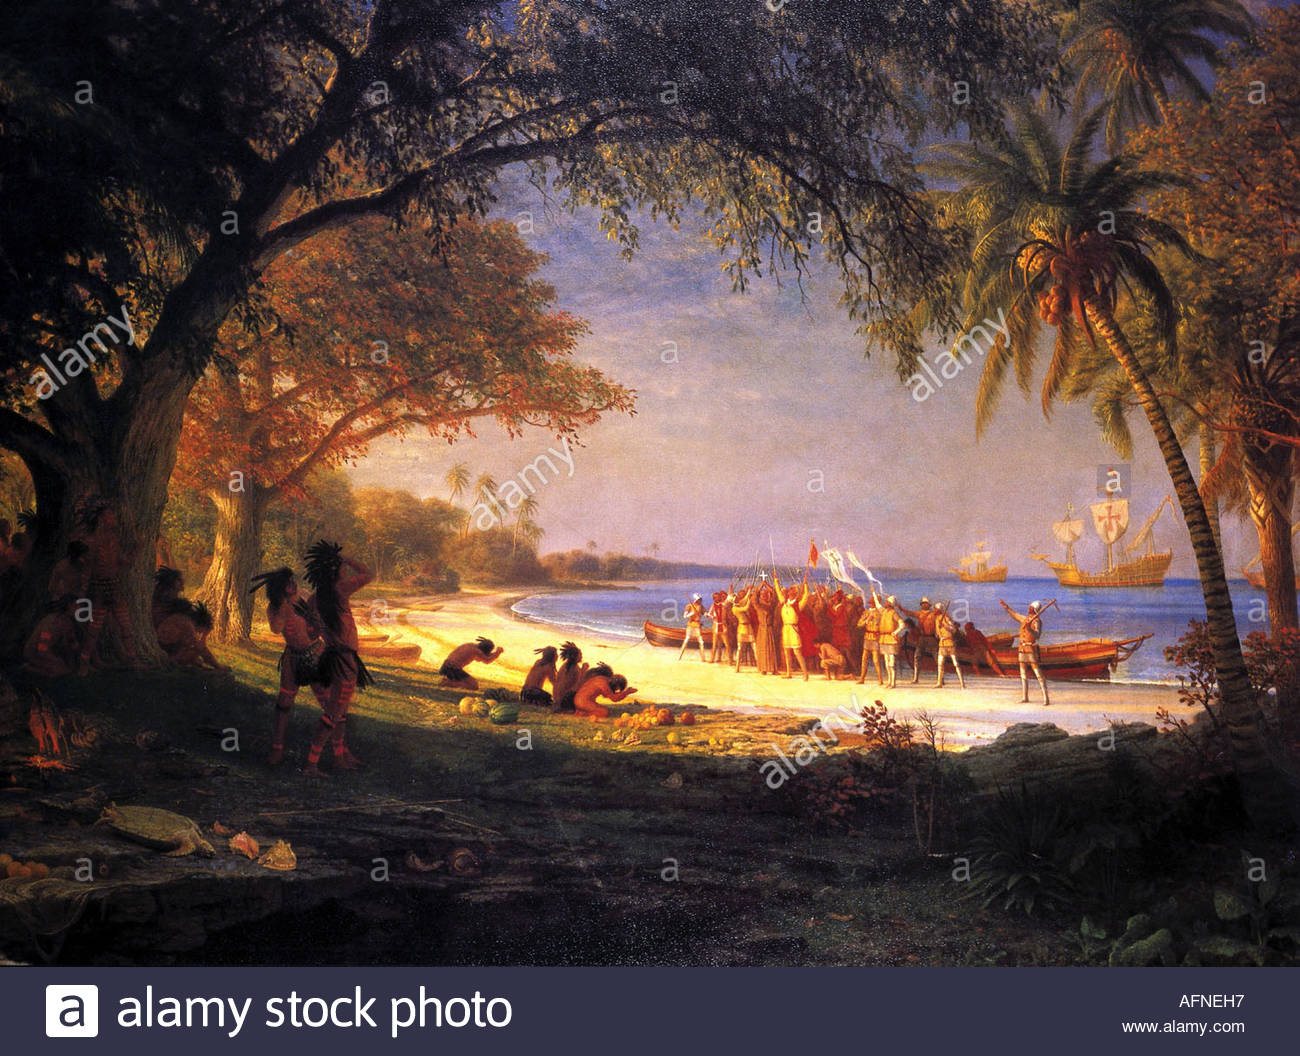 Columbus, Christopher, 1451 - 20.5.1506, Italian explorer, scene, arriving at Guanahani, 12.10.1492, history painting, Stock Foto